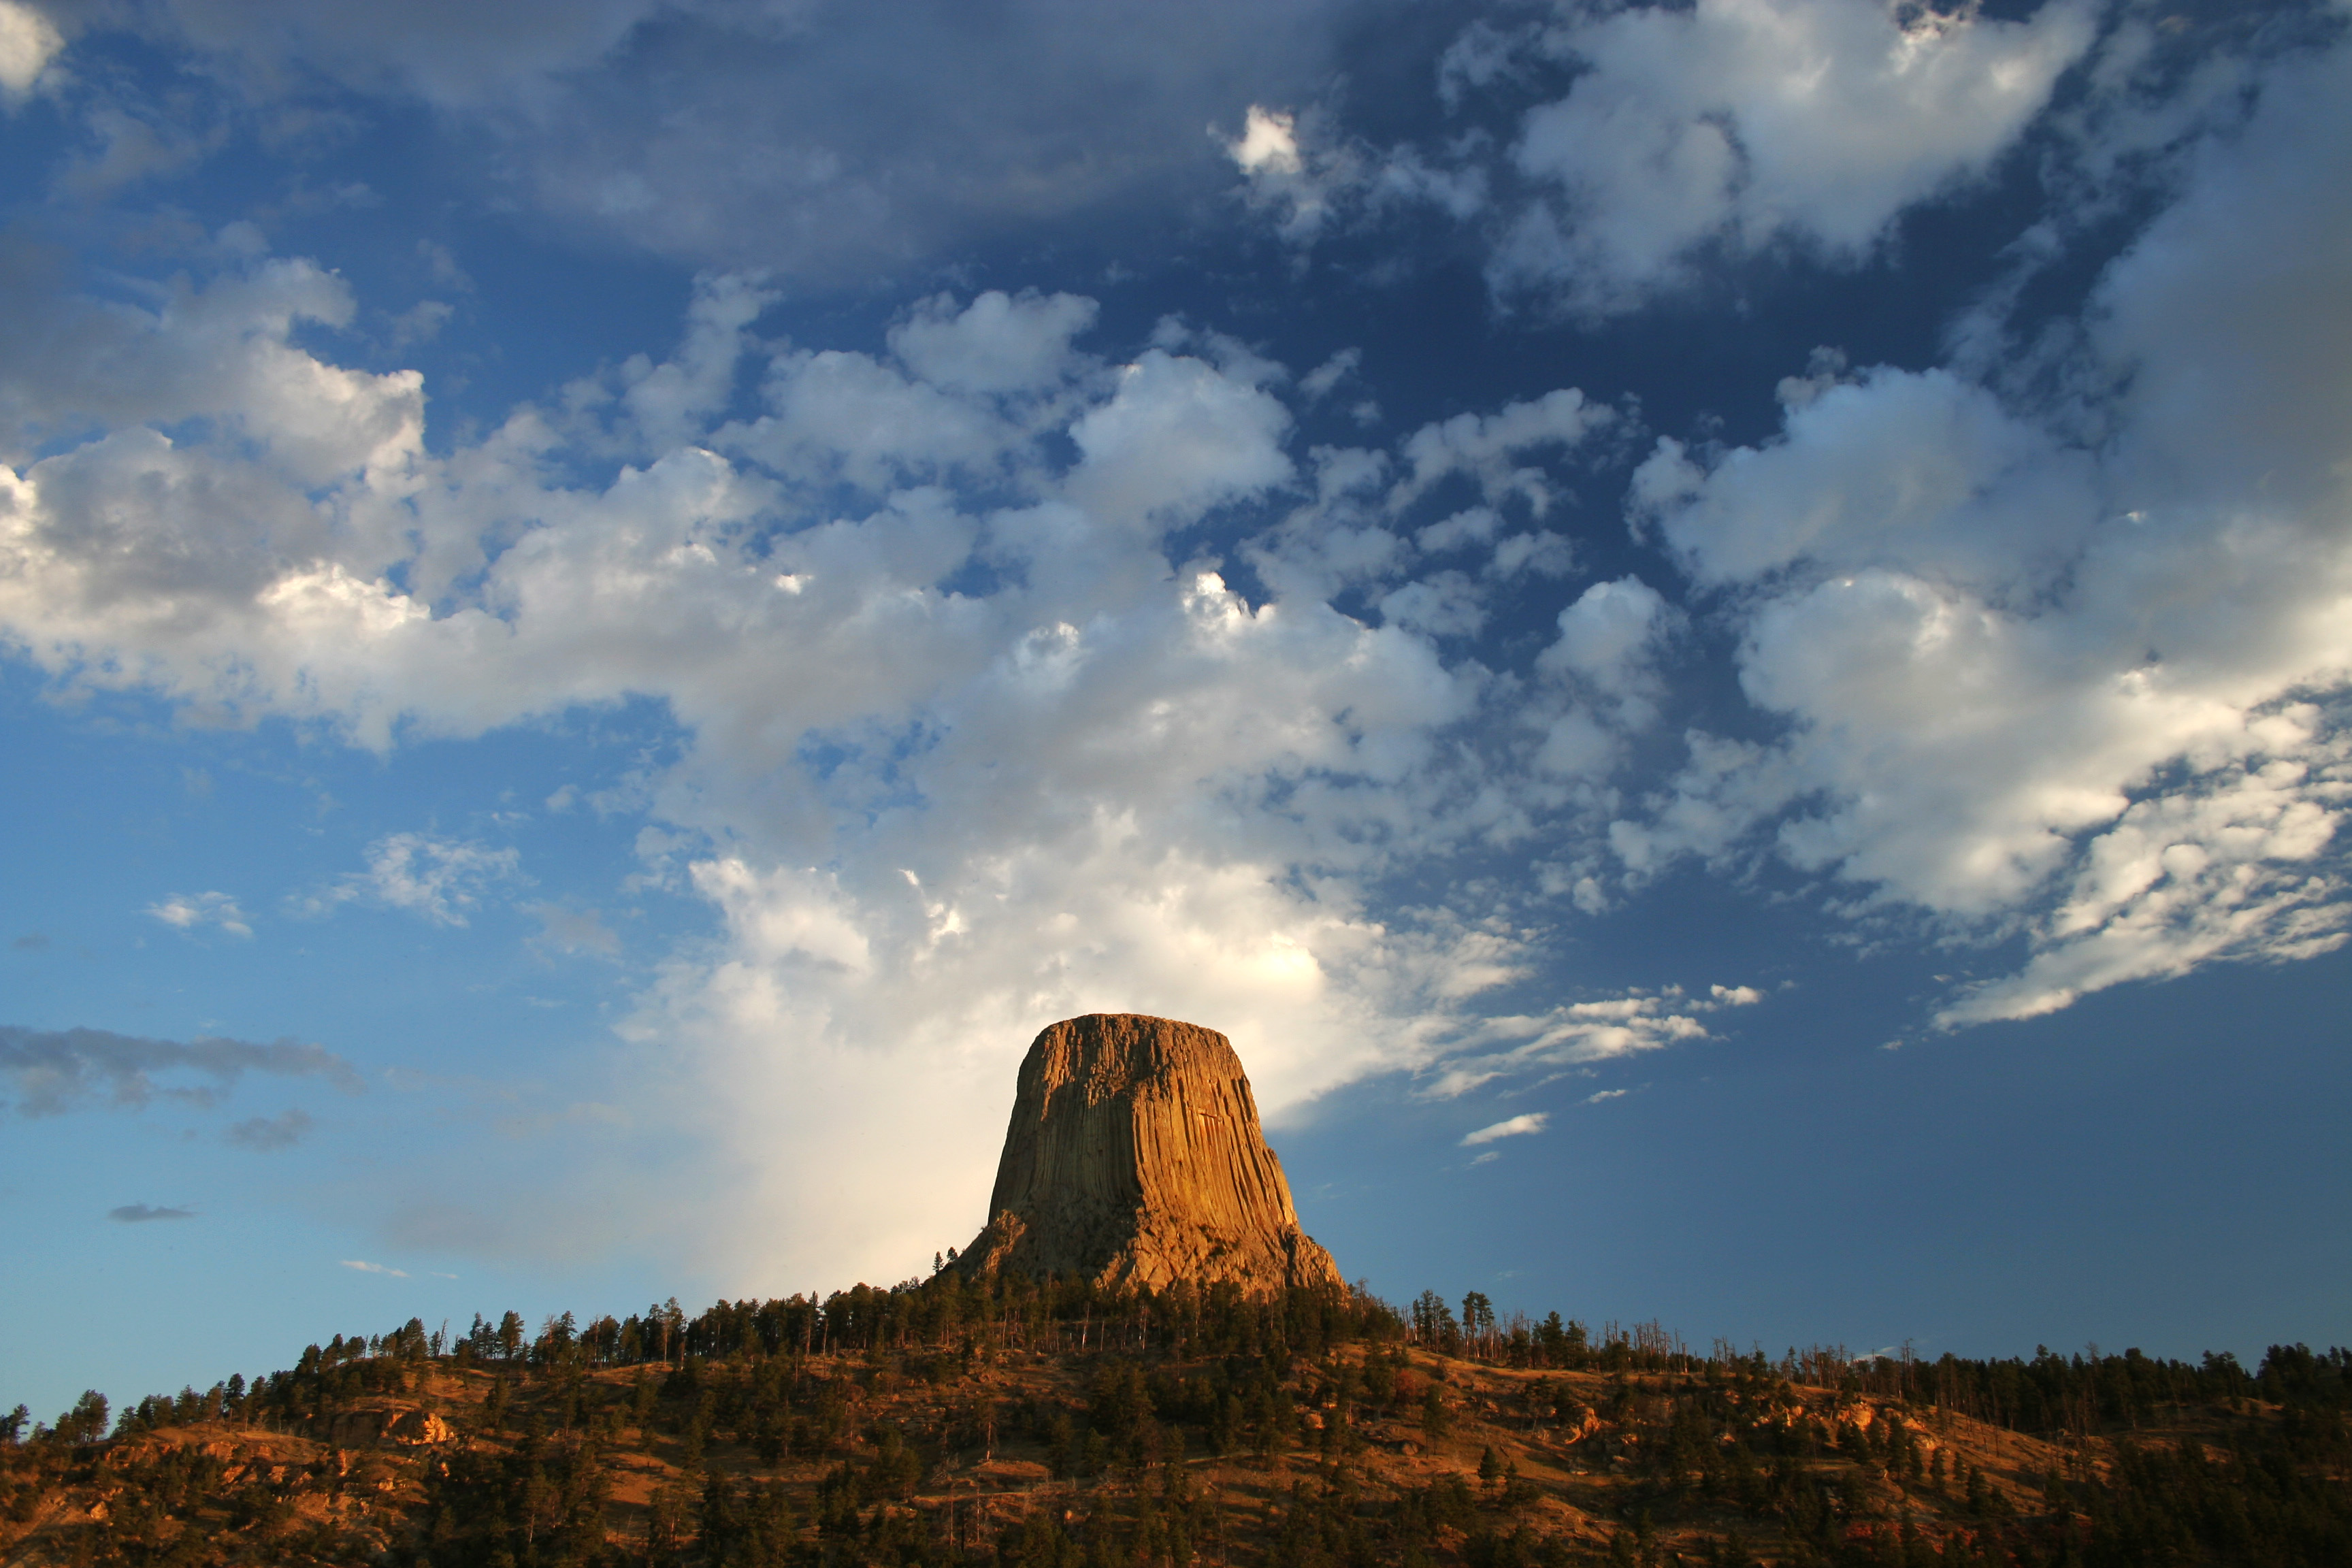 By B D (Devil's Tower select (3) 1.1) [CC BY 2.0 (http://creativecommons.org/licenses/by/2.0)], via Wikimedia Commons